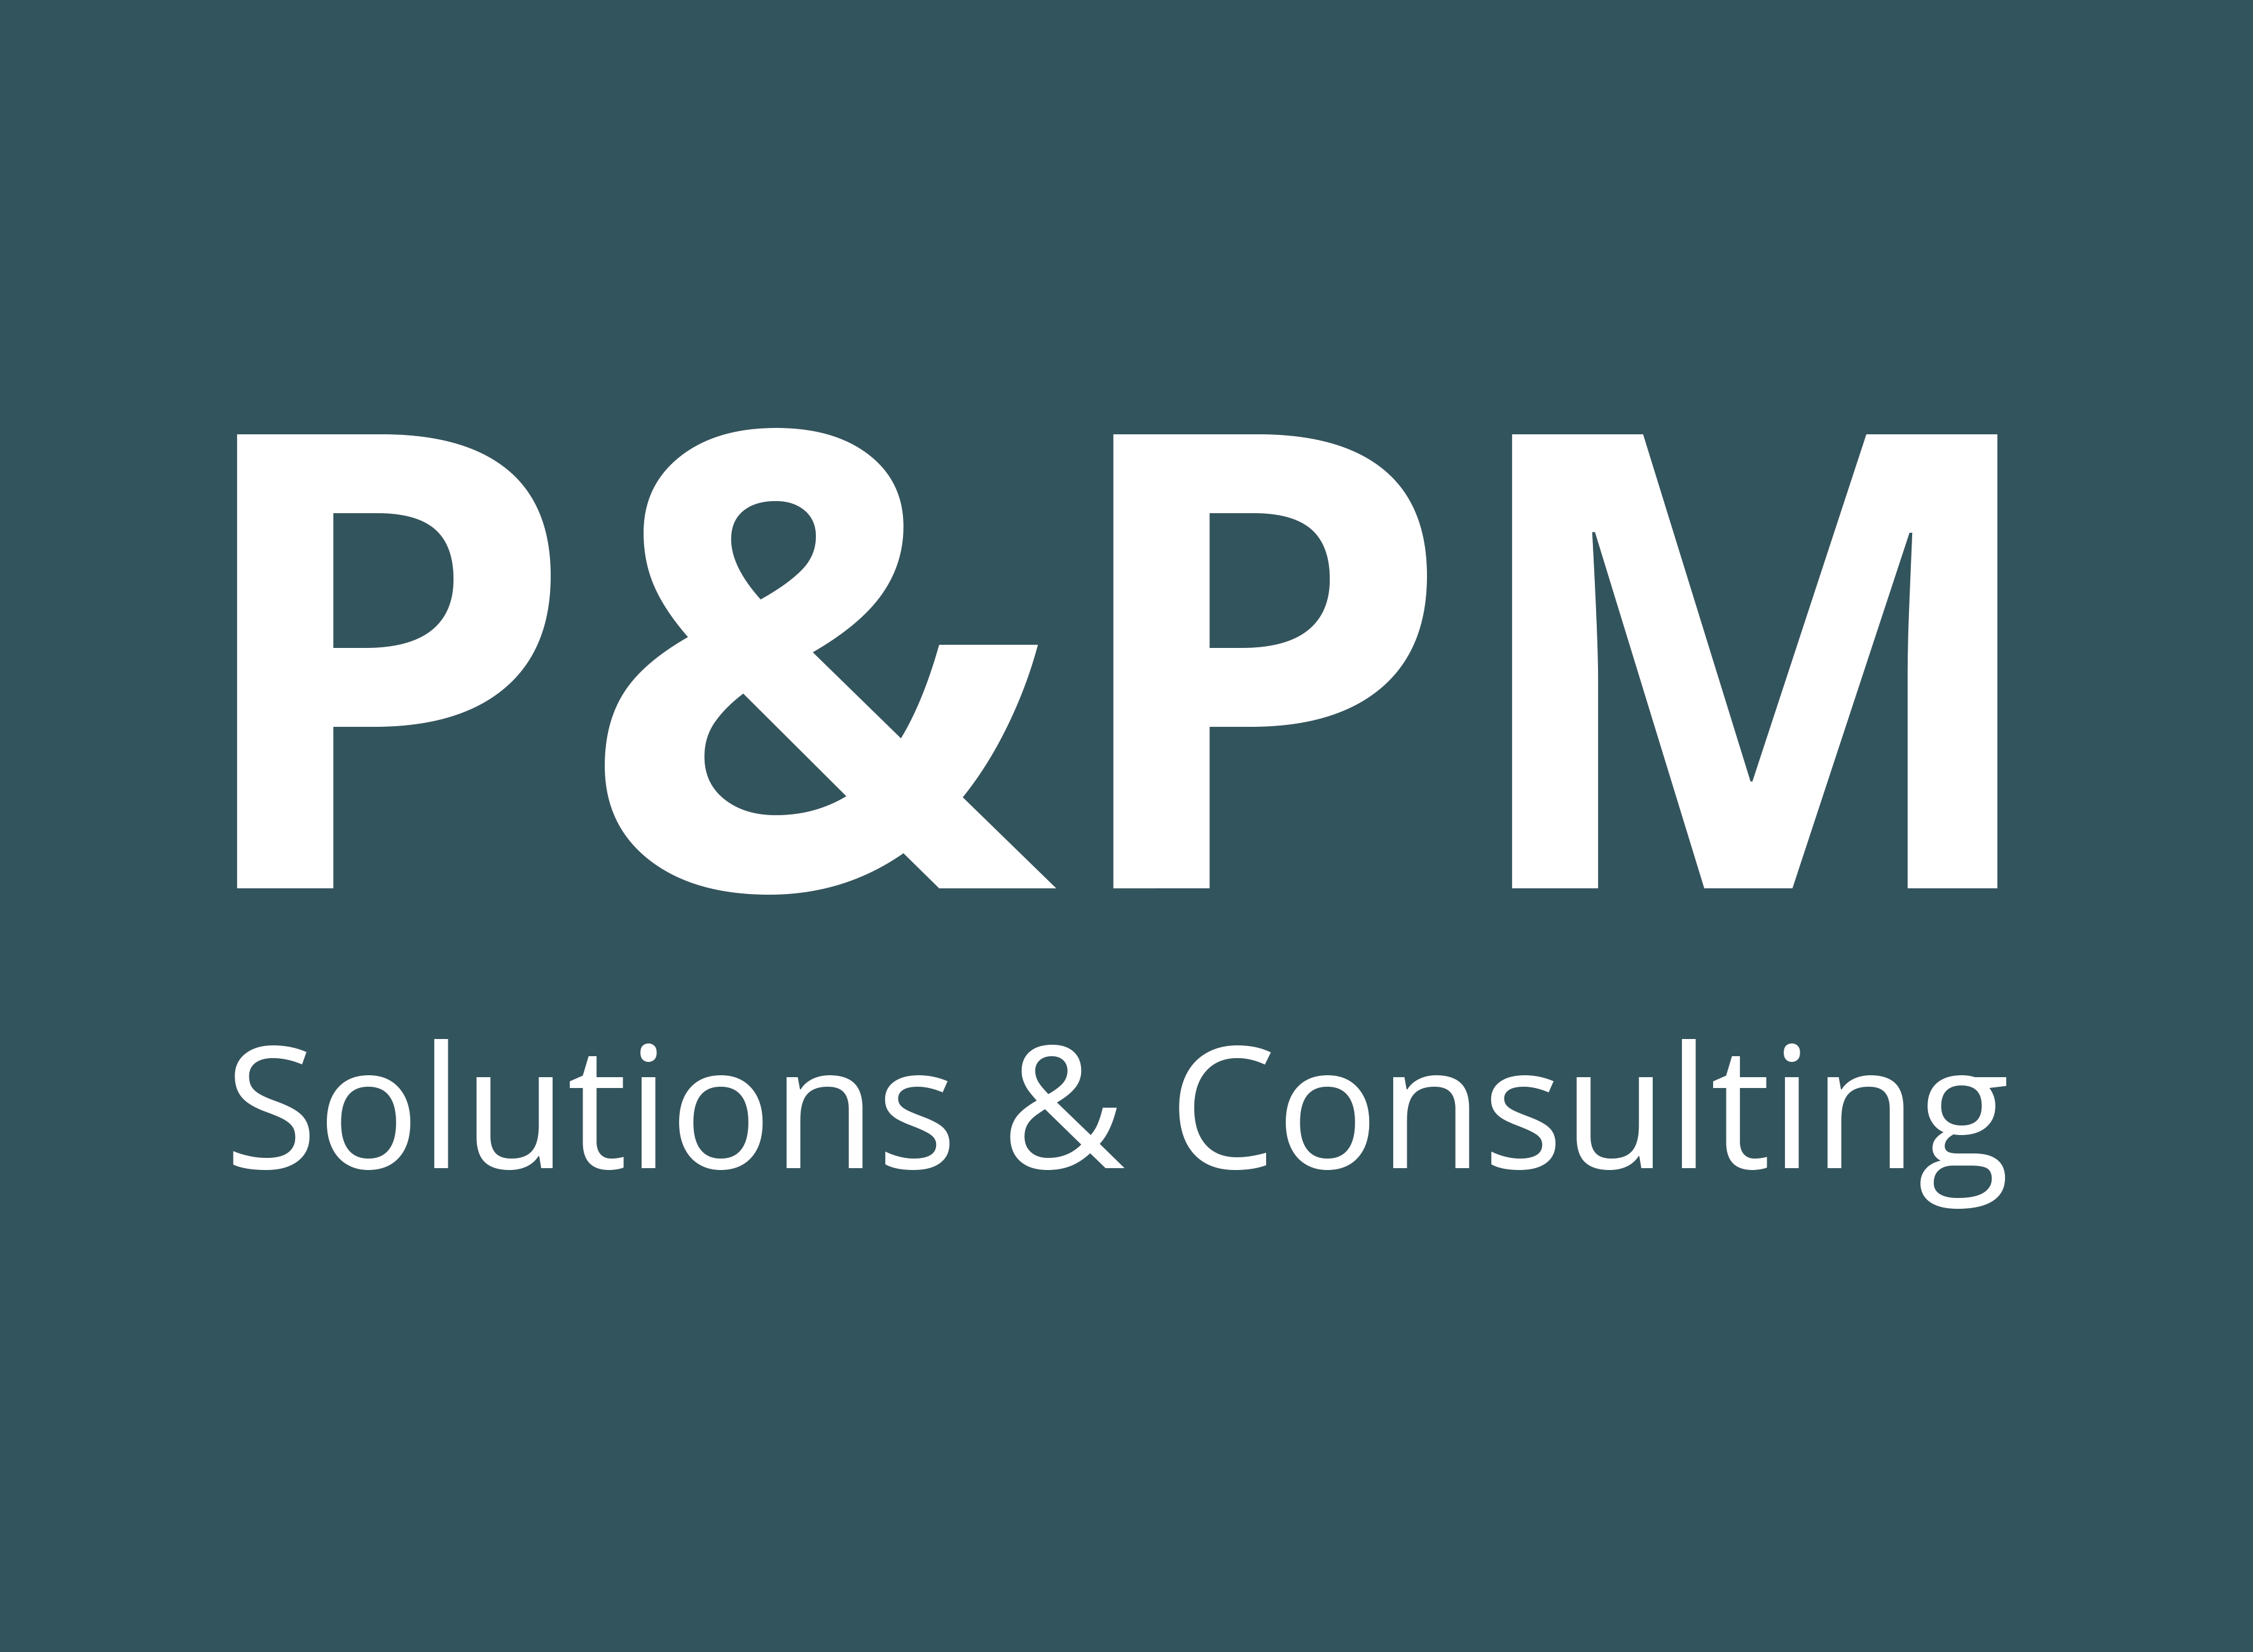 P&PM Solutions & Consulting GmbH